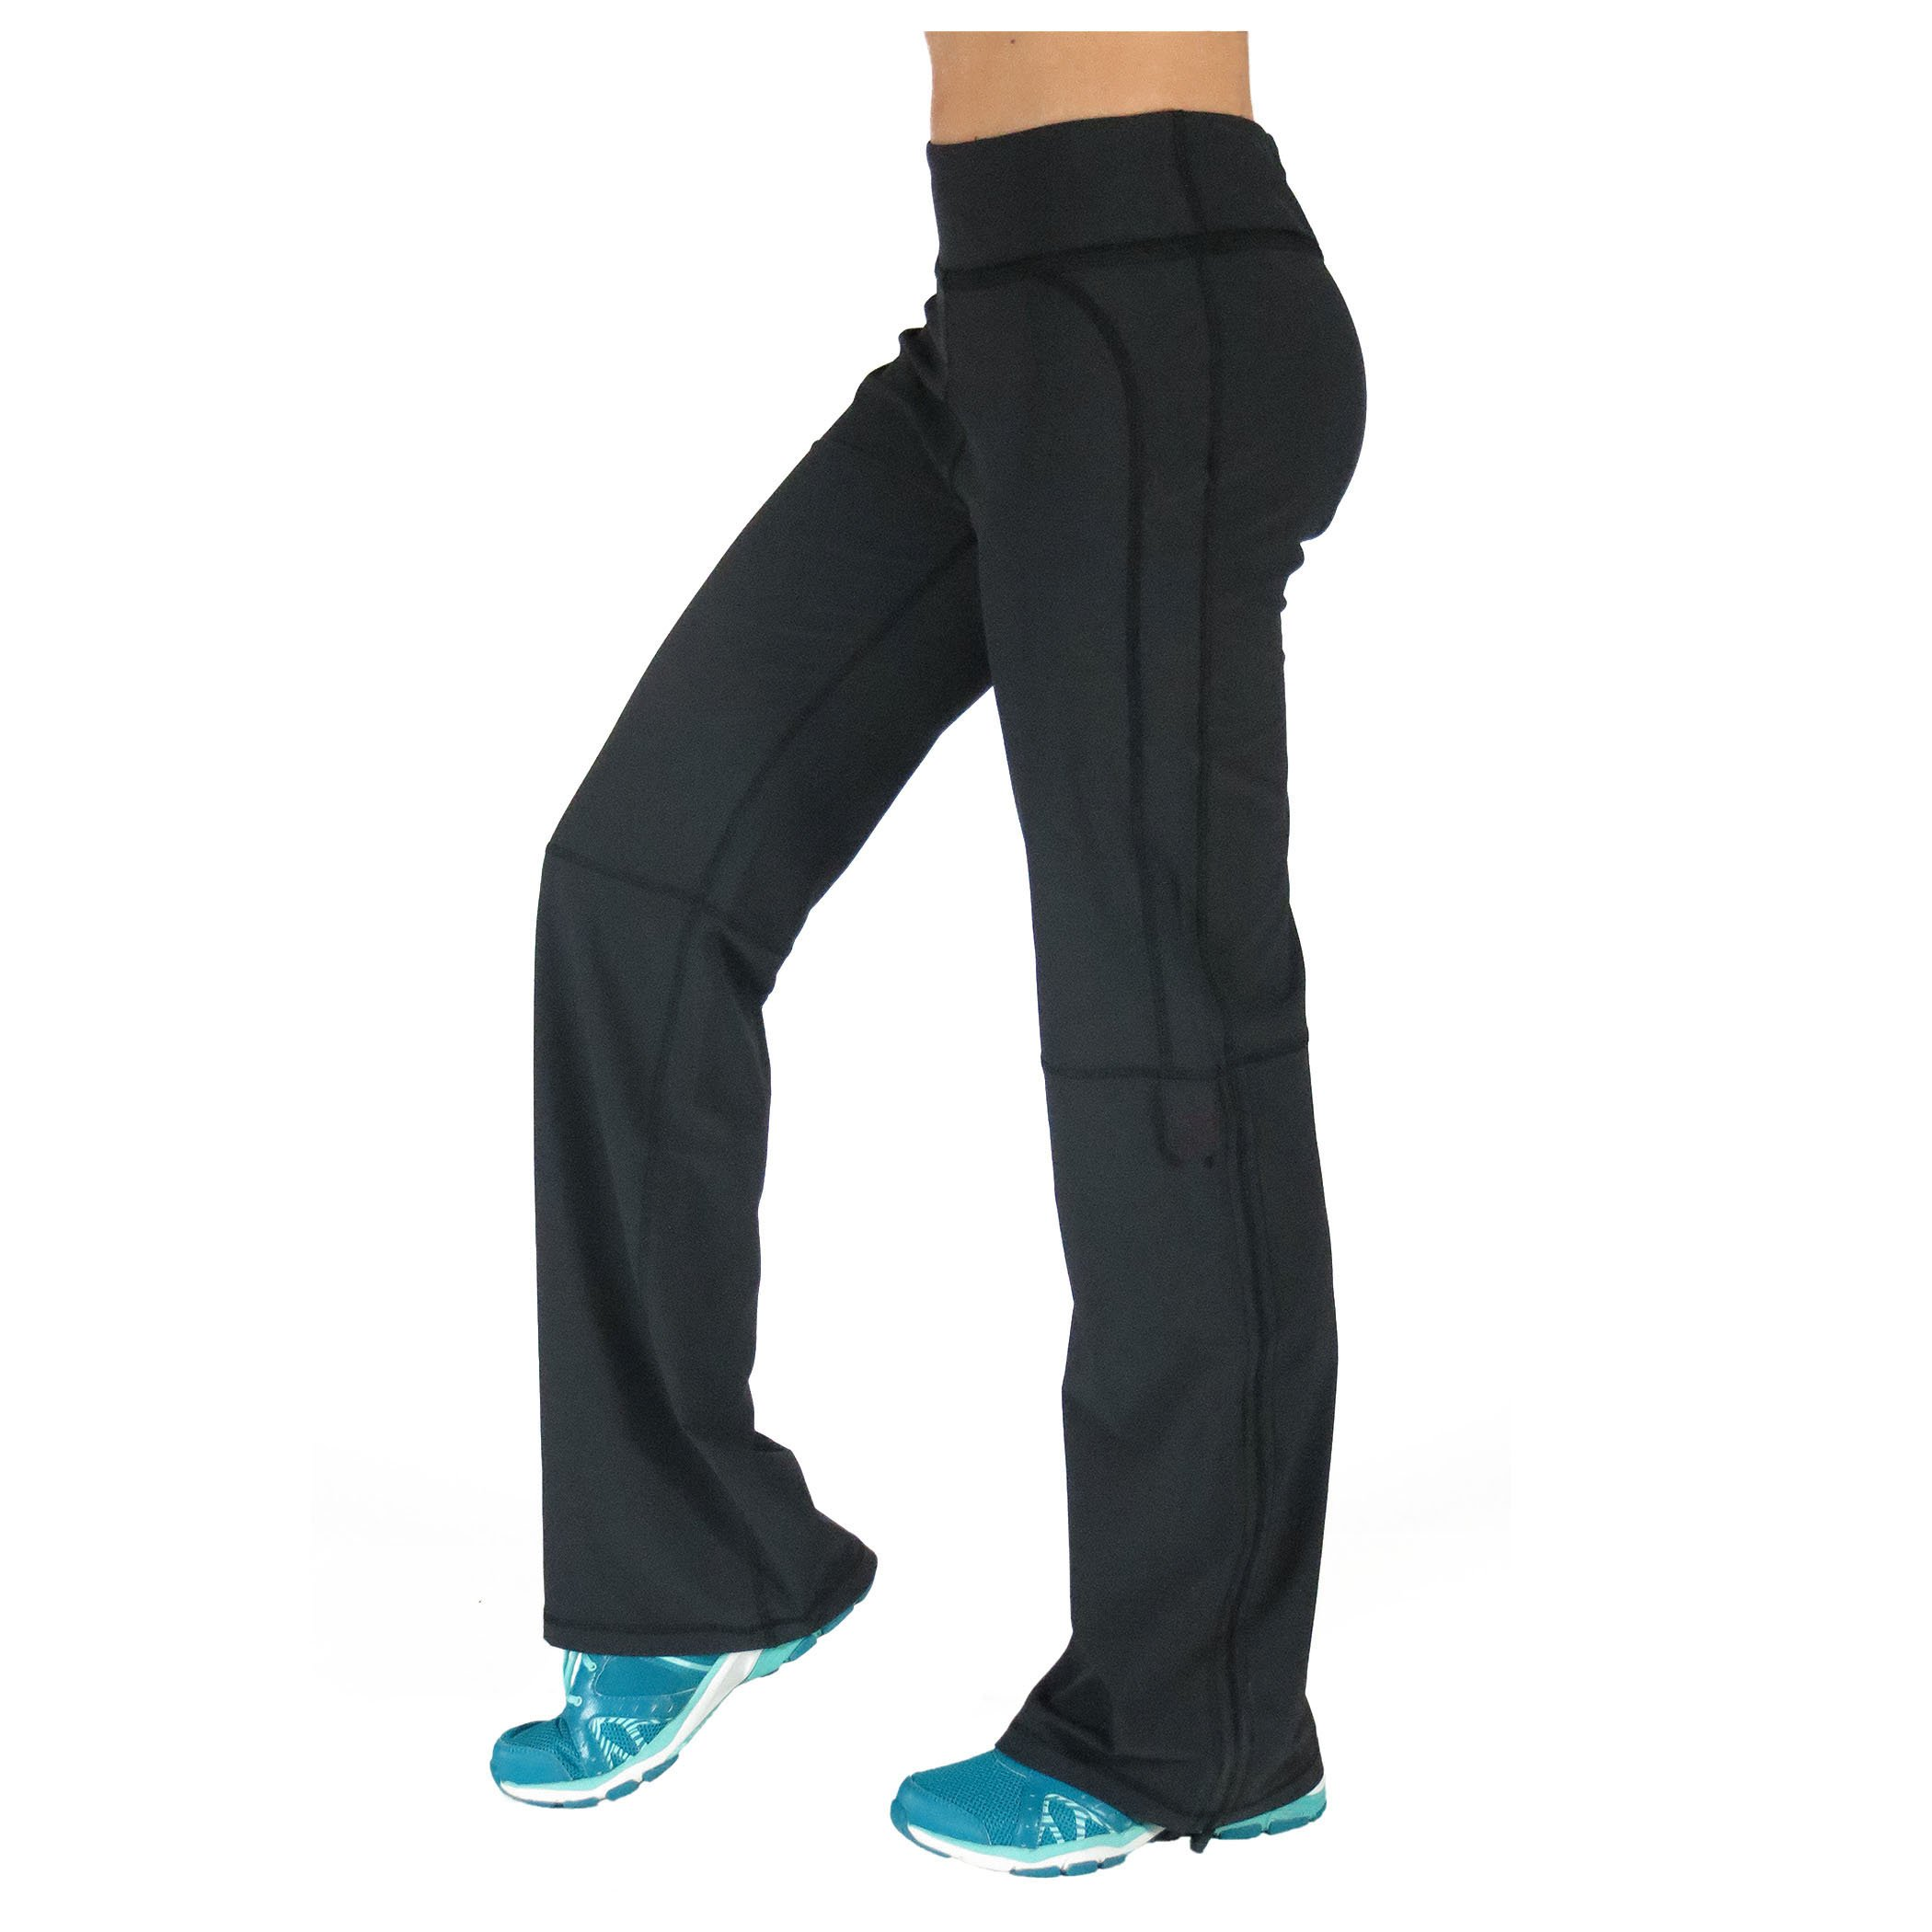 Alex + Abby Women's in-Motion Pant Medium Black